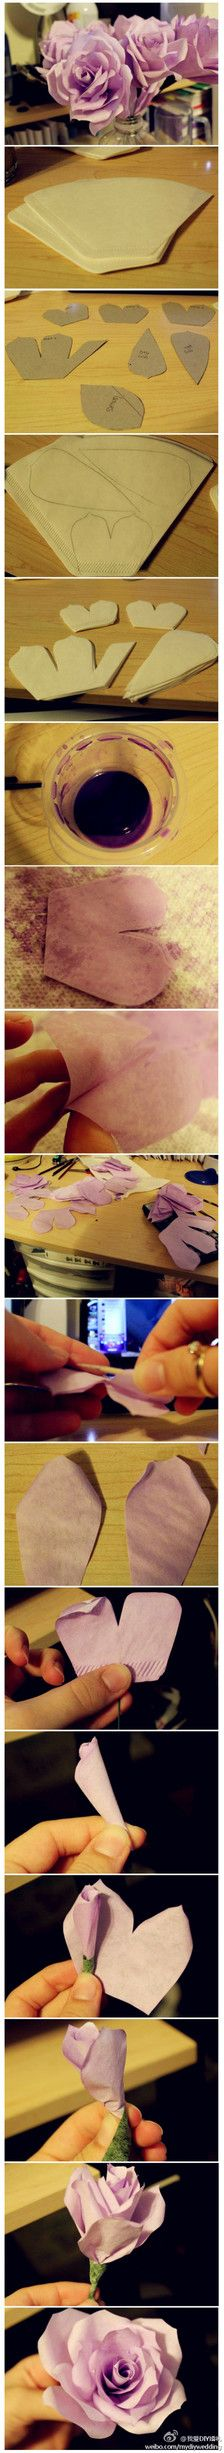 Ultra-detailed tutorial!  With a coffee filter paper will be able to make such elaborate roses